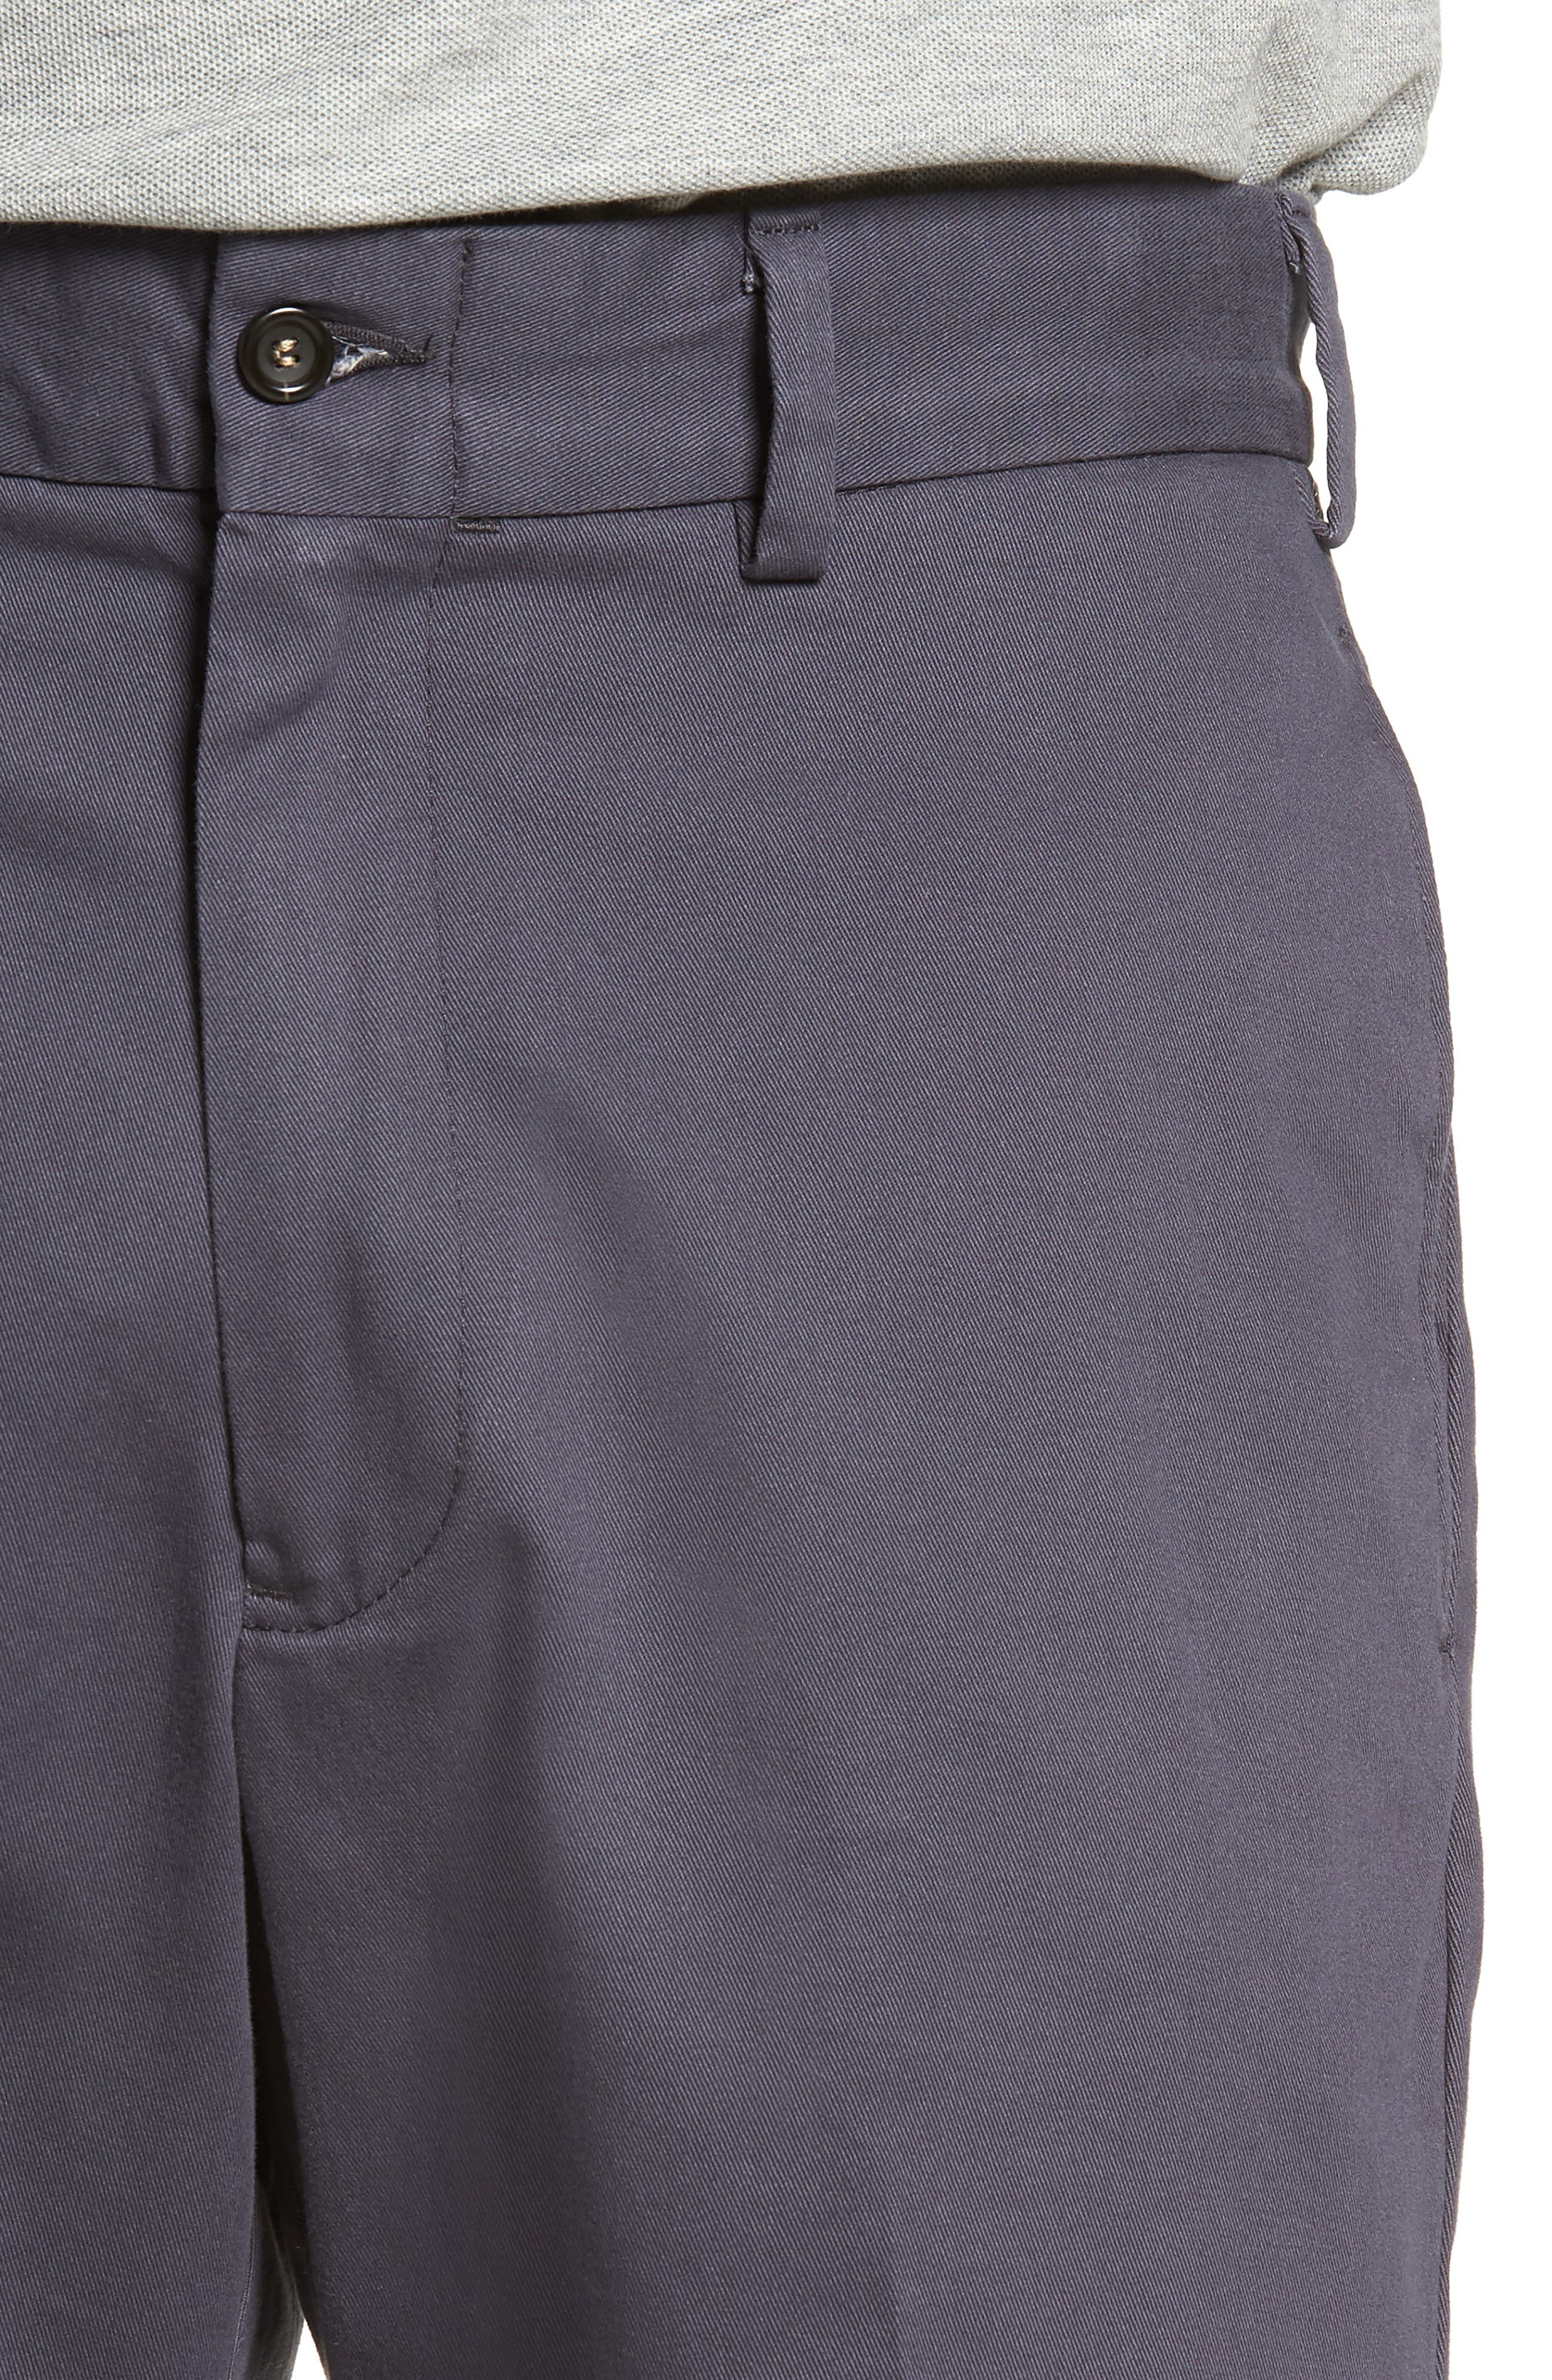 M2 Classic Fit Flat Front Vintage Twill Shorts,                             Alternate thumbnail 4, color,